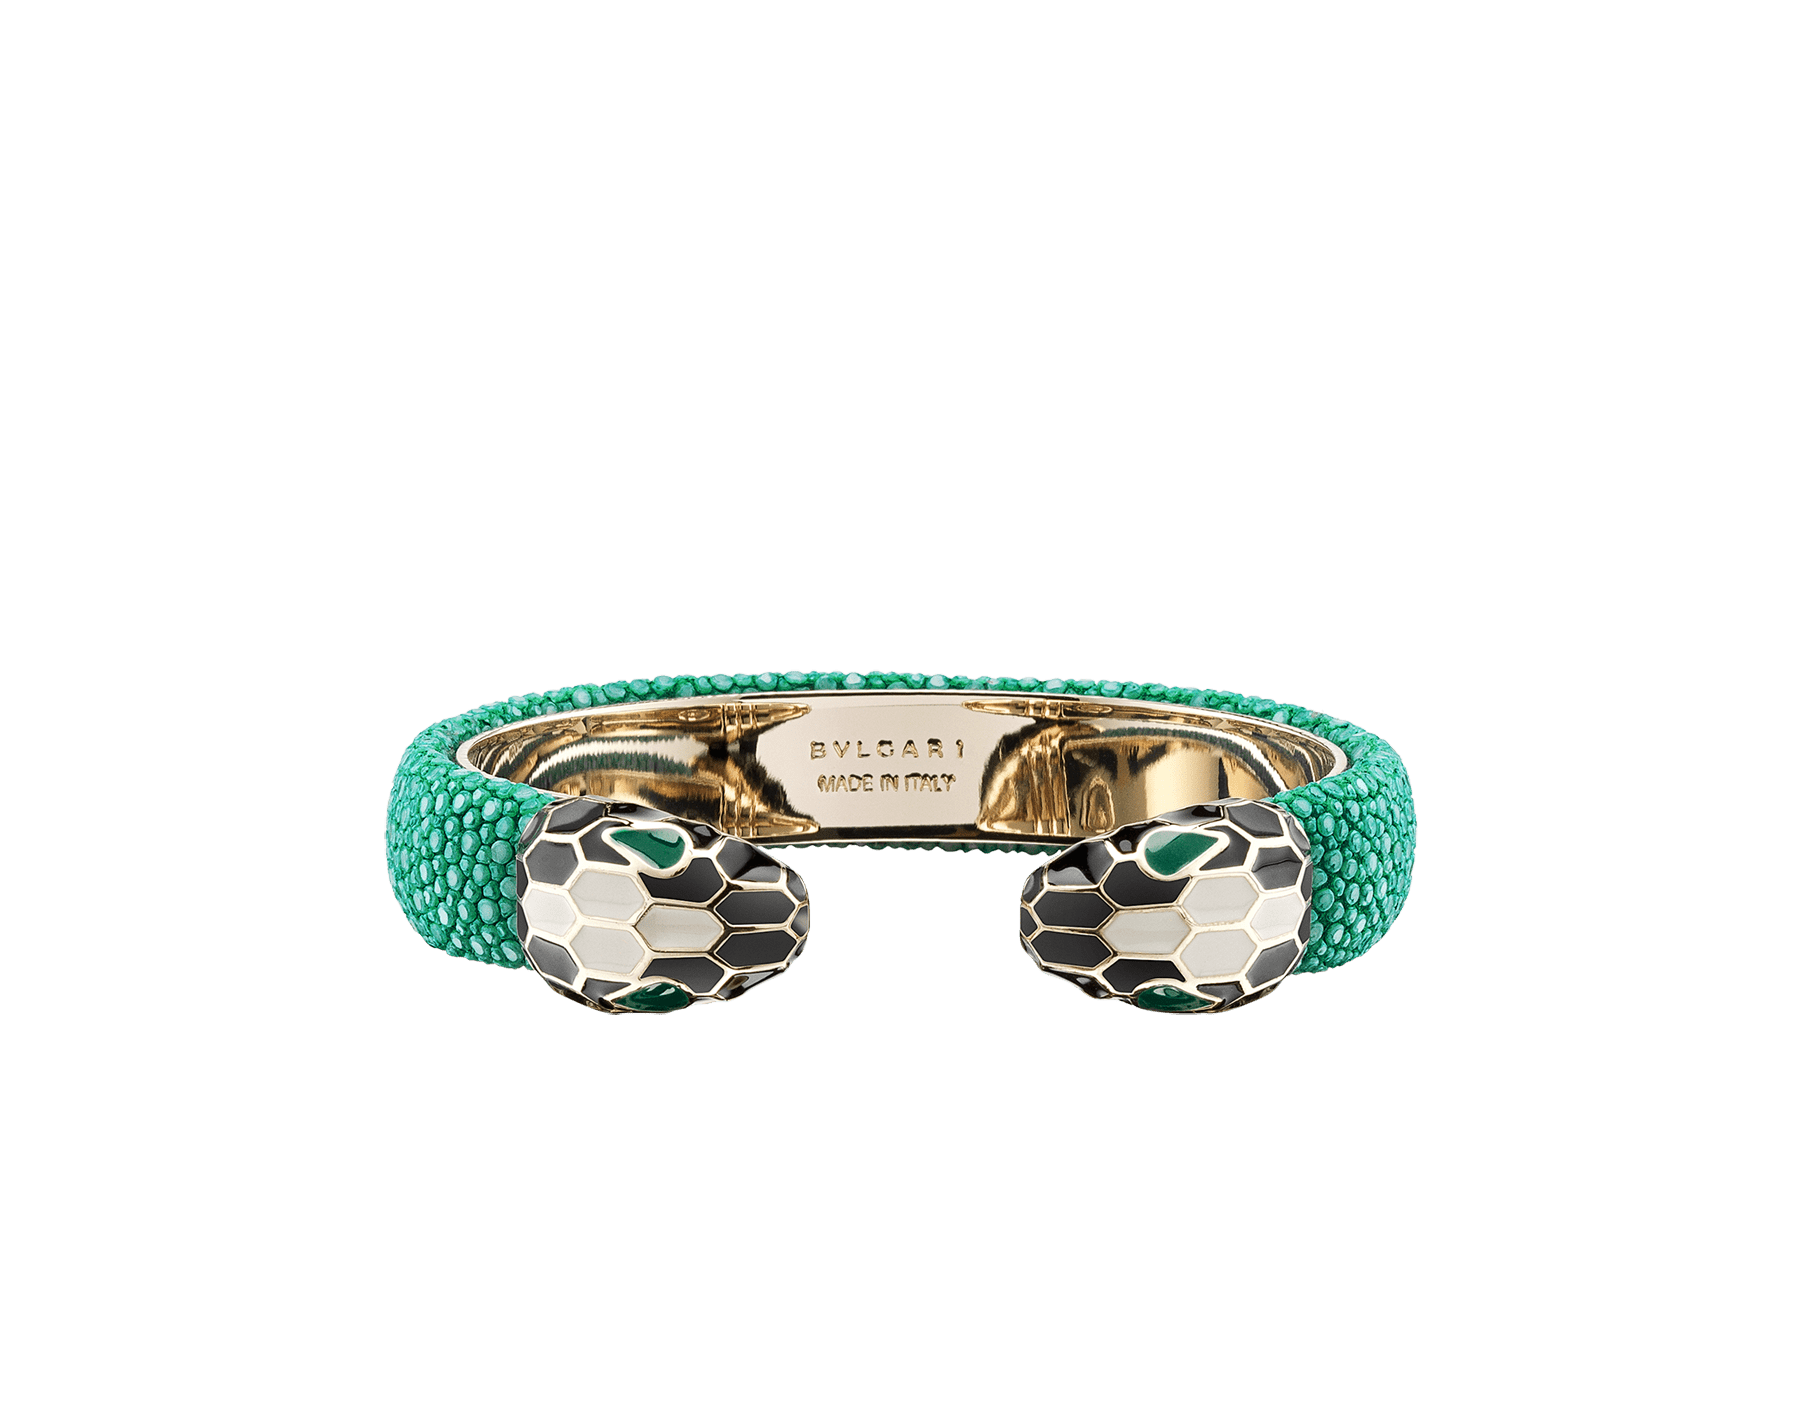 Bracelet in emerald green galuchat skin with iconic contraire brass light gold plated Serpenti heads motif in black and white enamel, with malachite enamel eyes. SerpBraid-WCL-GIFTBOX image 1